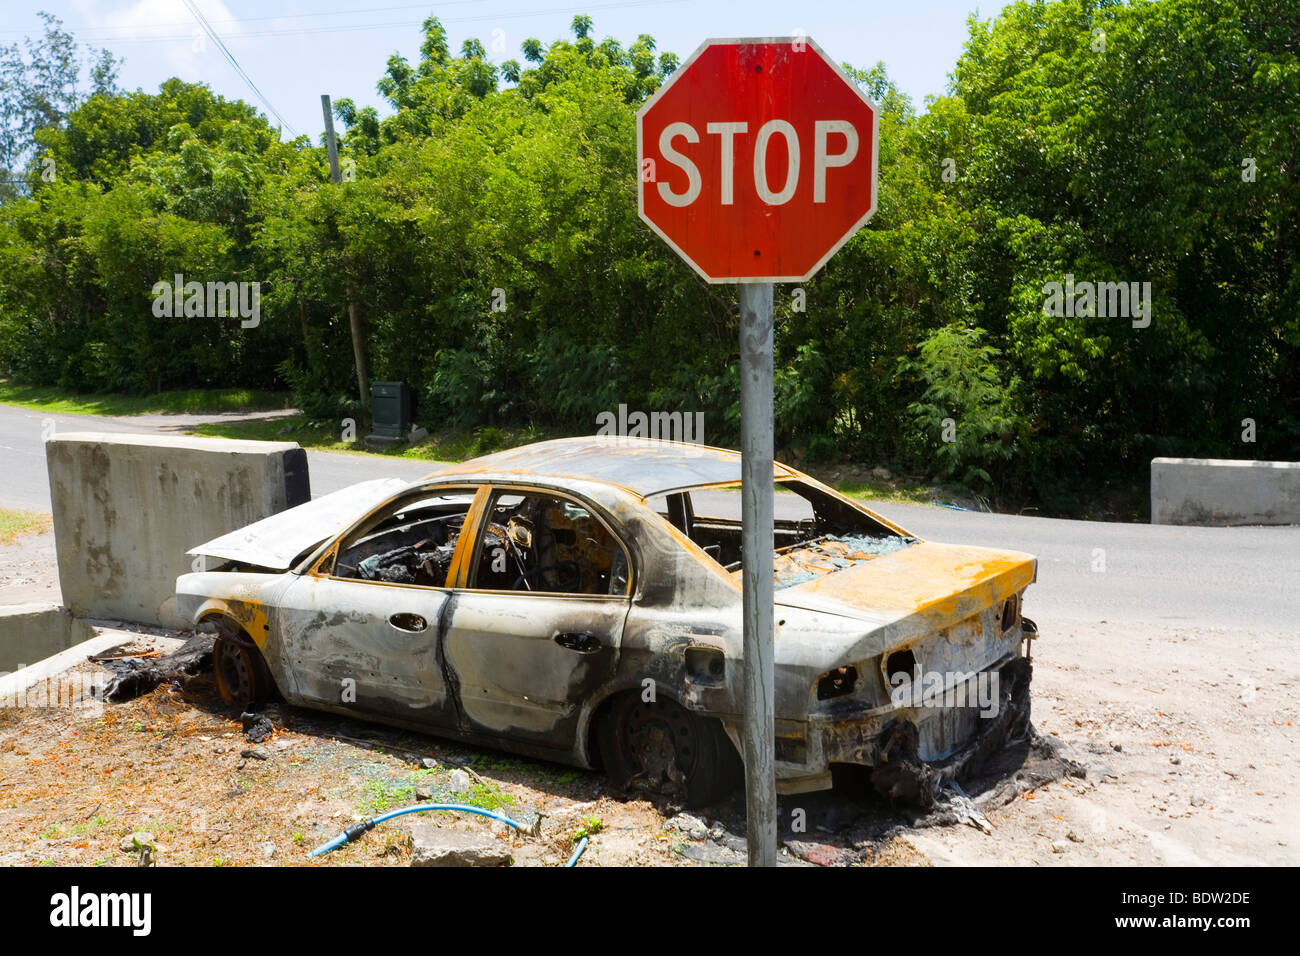 Remains of a car after crash and fire. - Stock Image